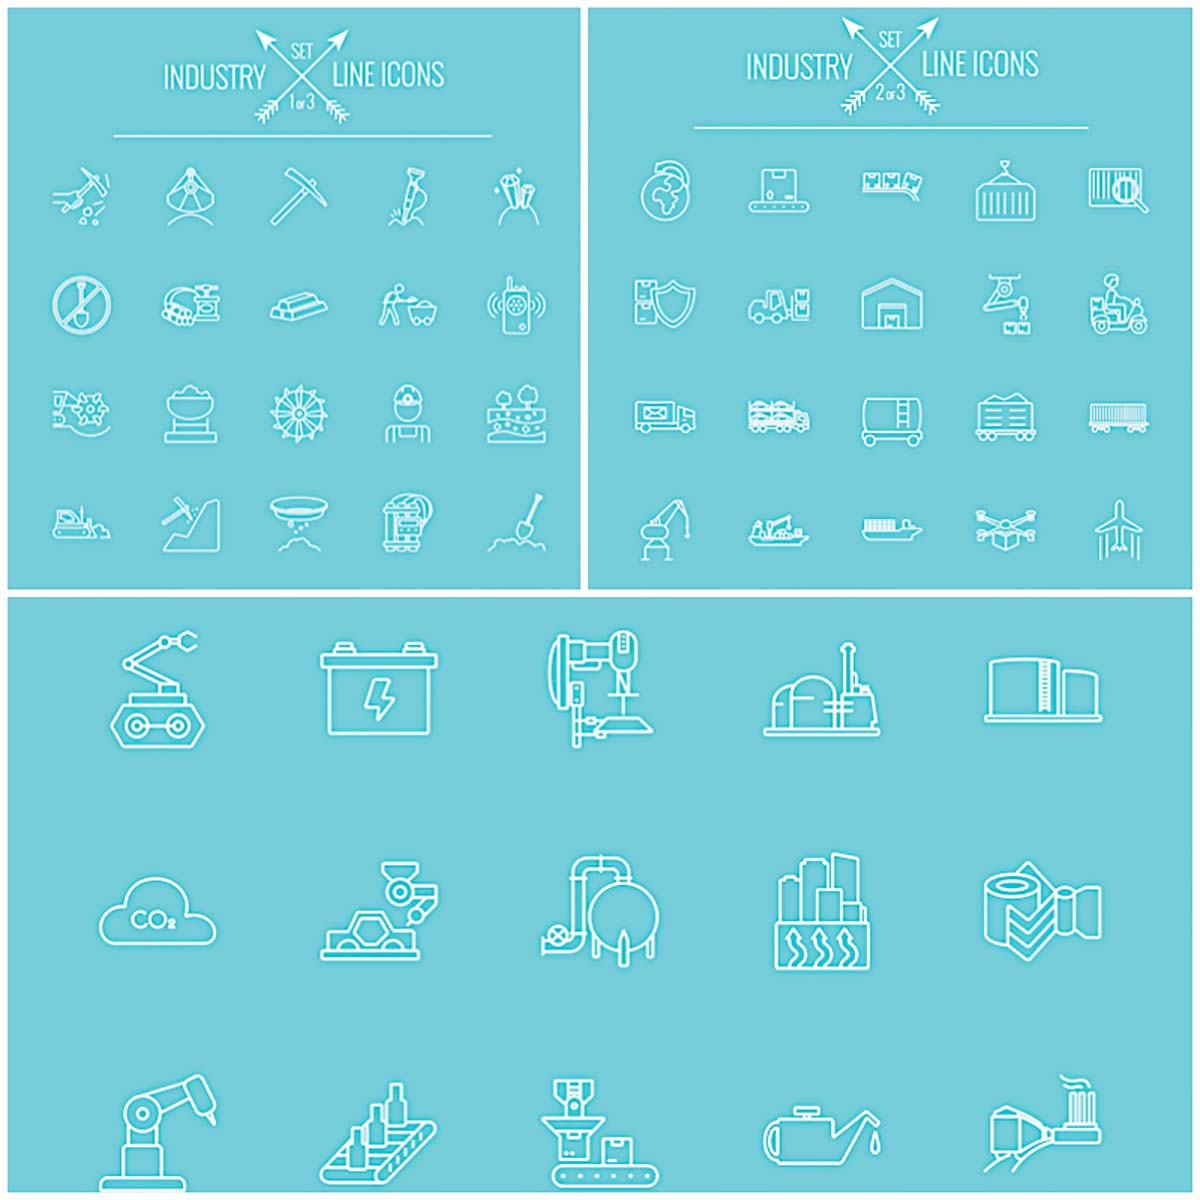 Industry line icon set of vectors